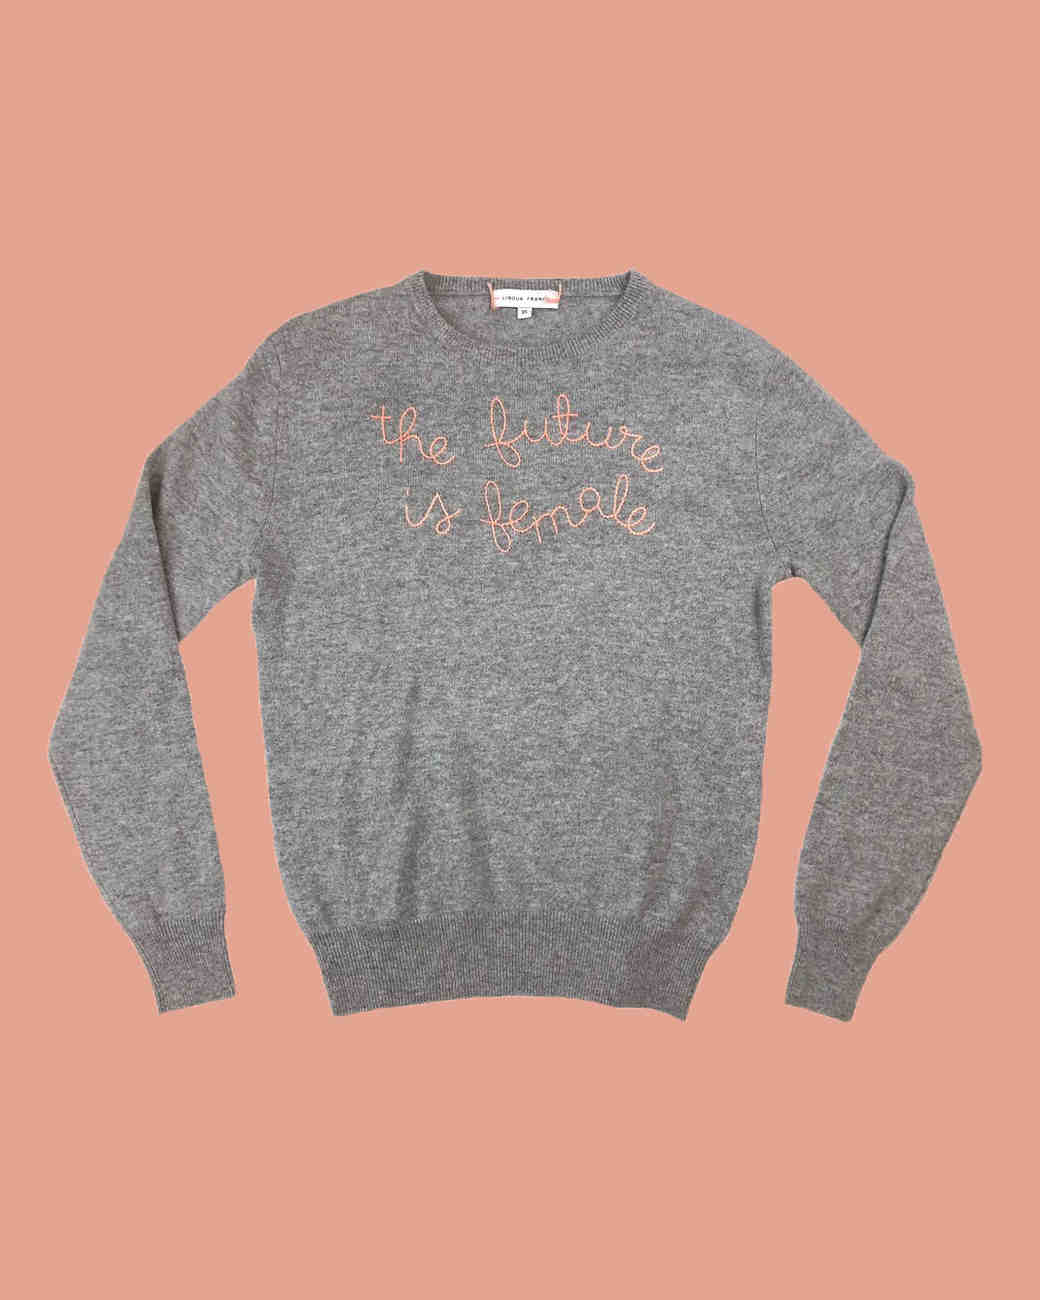 personalized gift cashmere sweater